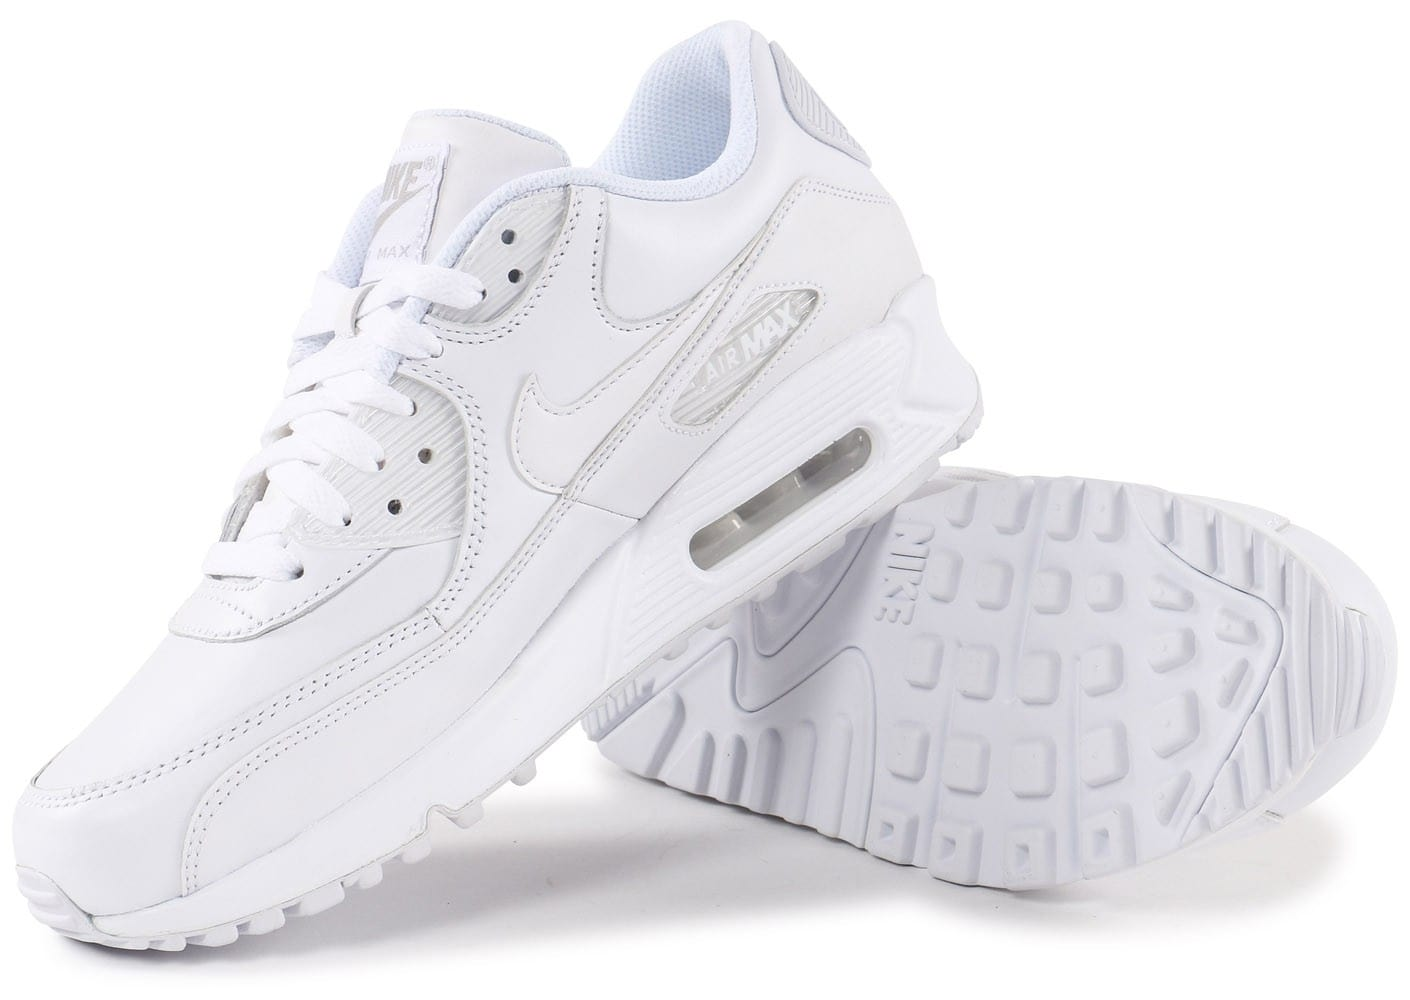 huge selection of 202c2 b87ab chaussures nike air max 90 leather blanche vue dessous semelle